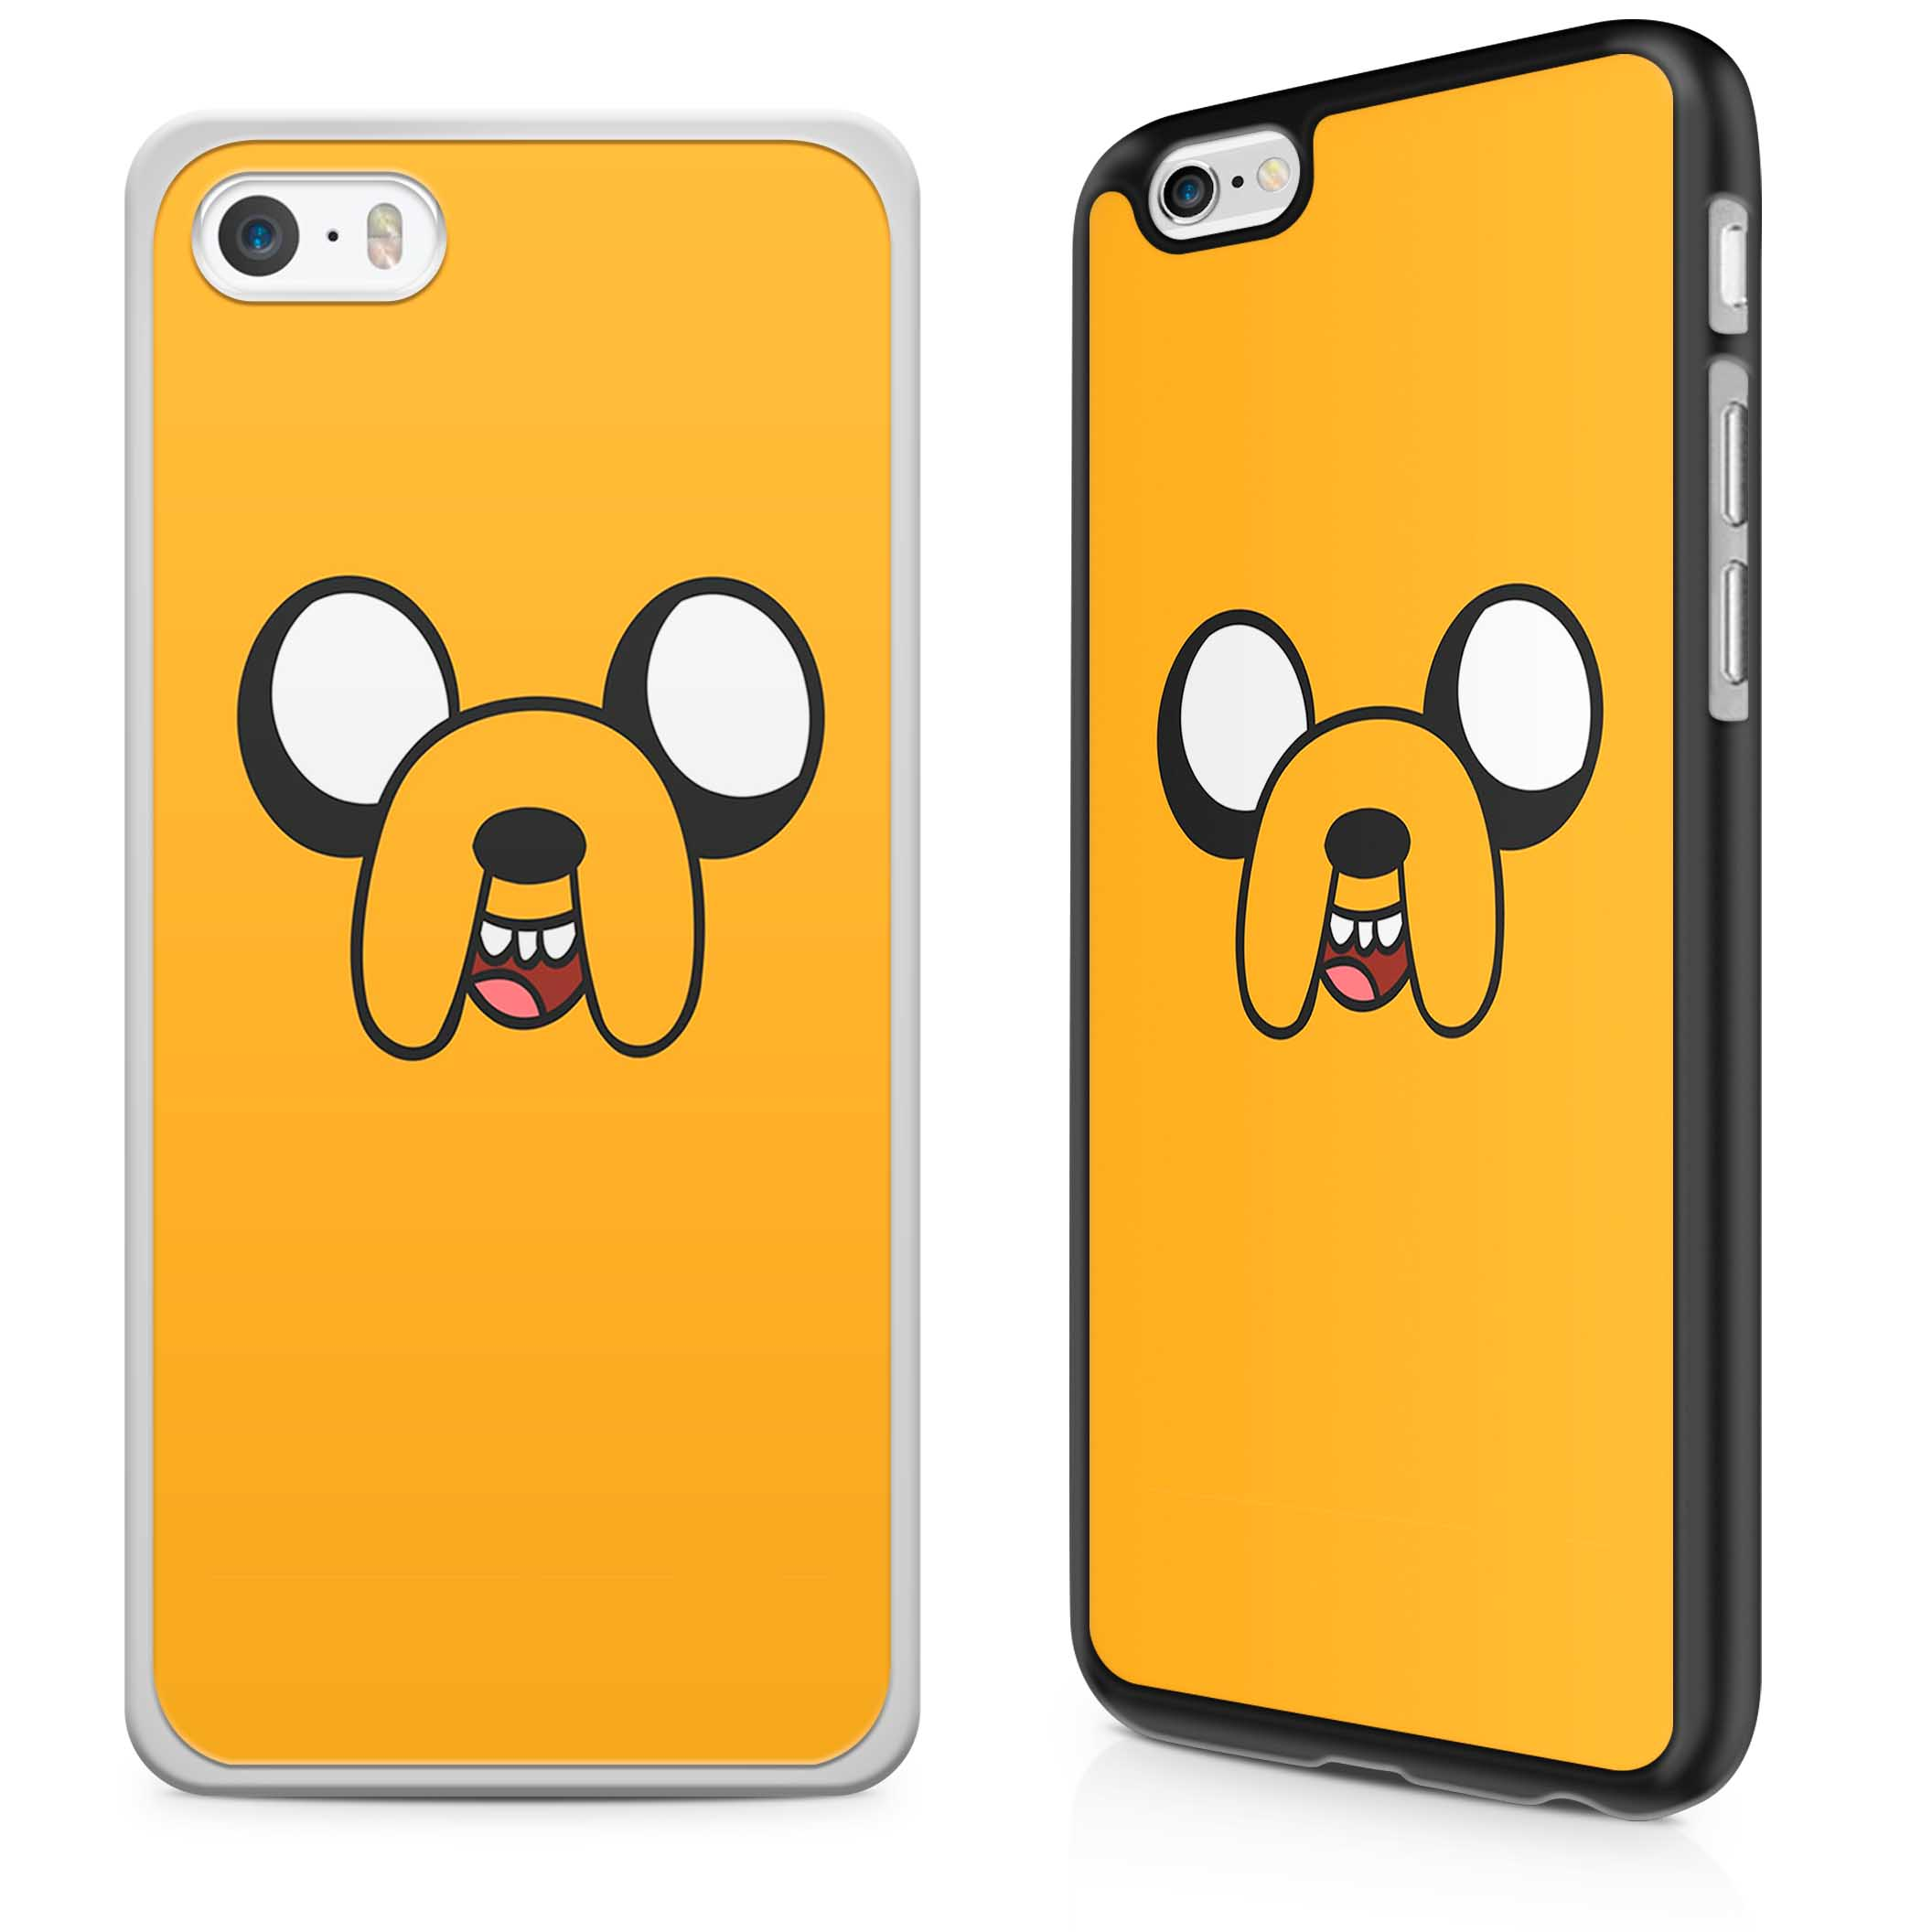 iPhone personalised phone case iphone 5c : ... Time Phone Case Cover Finn Jake Beemo BMO LSP MVQ For Iphone FP : eBay